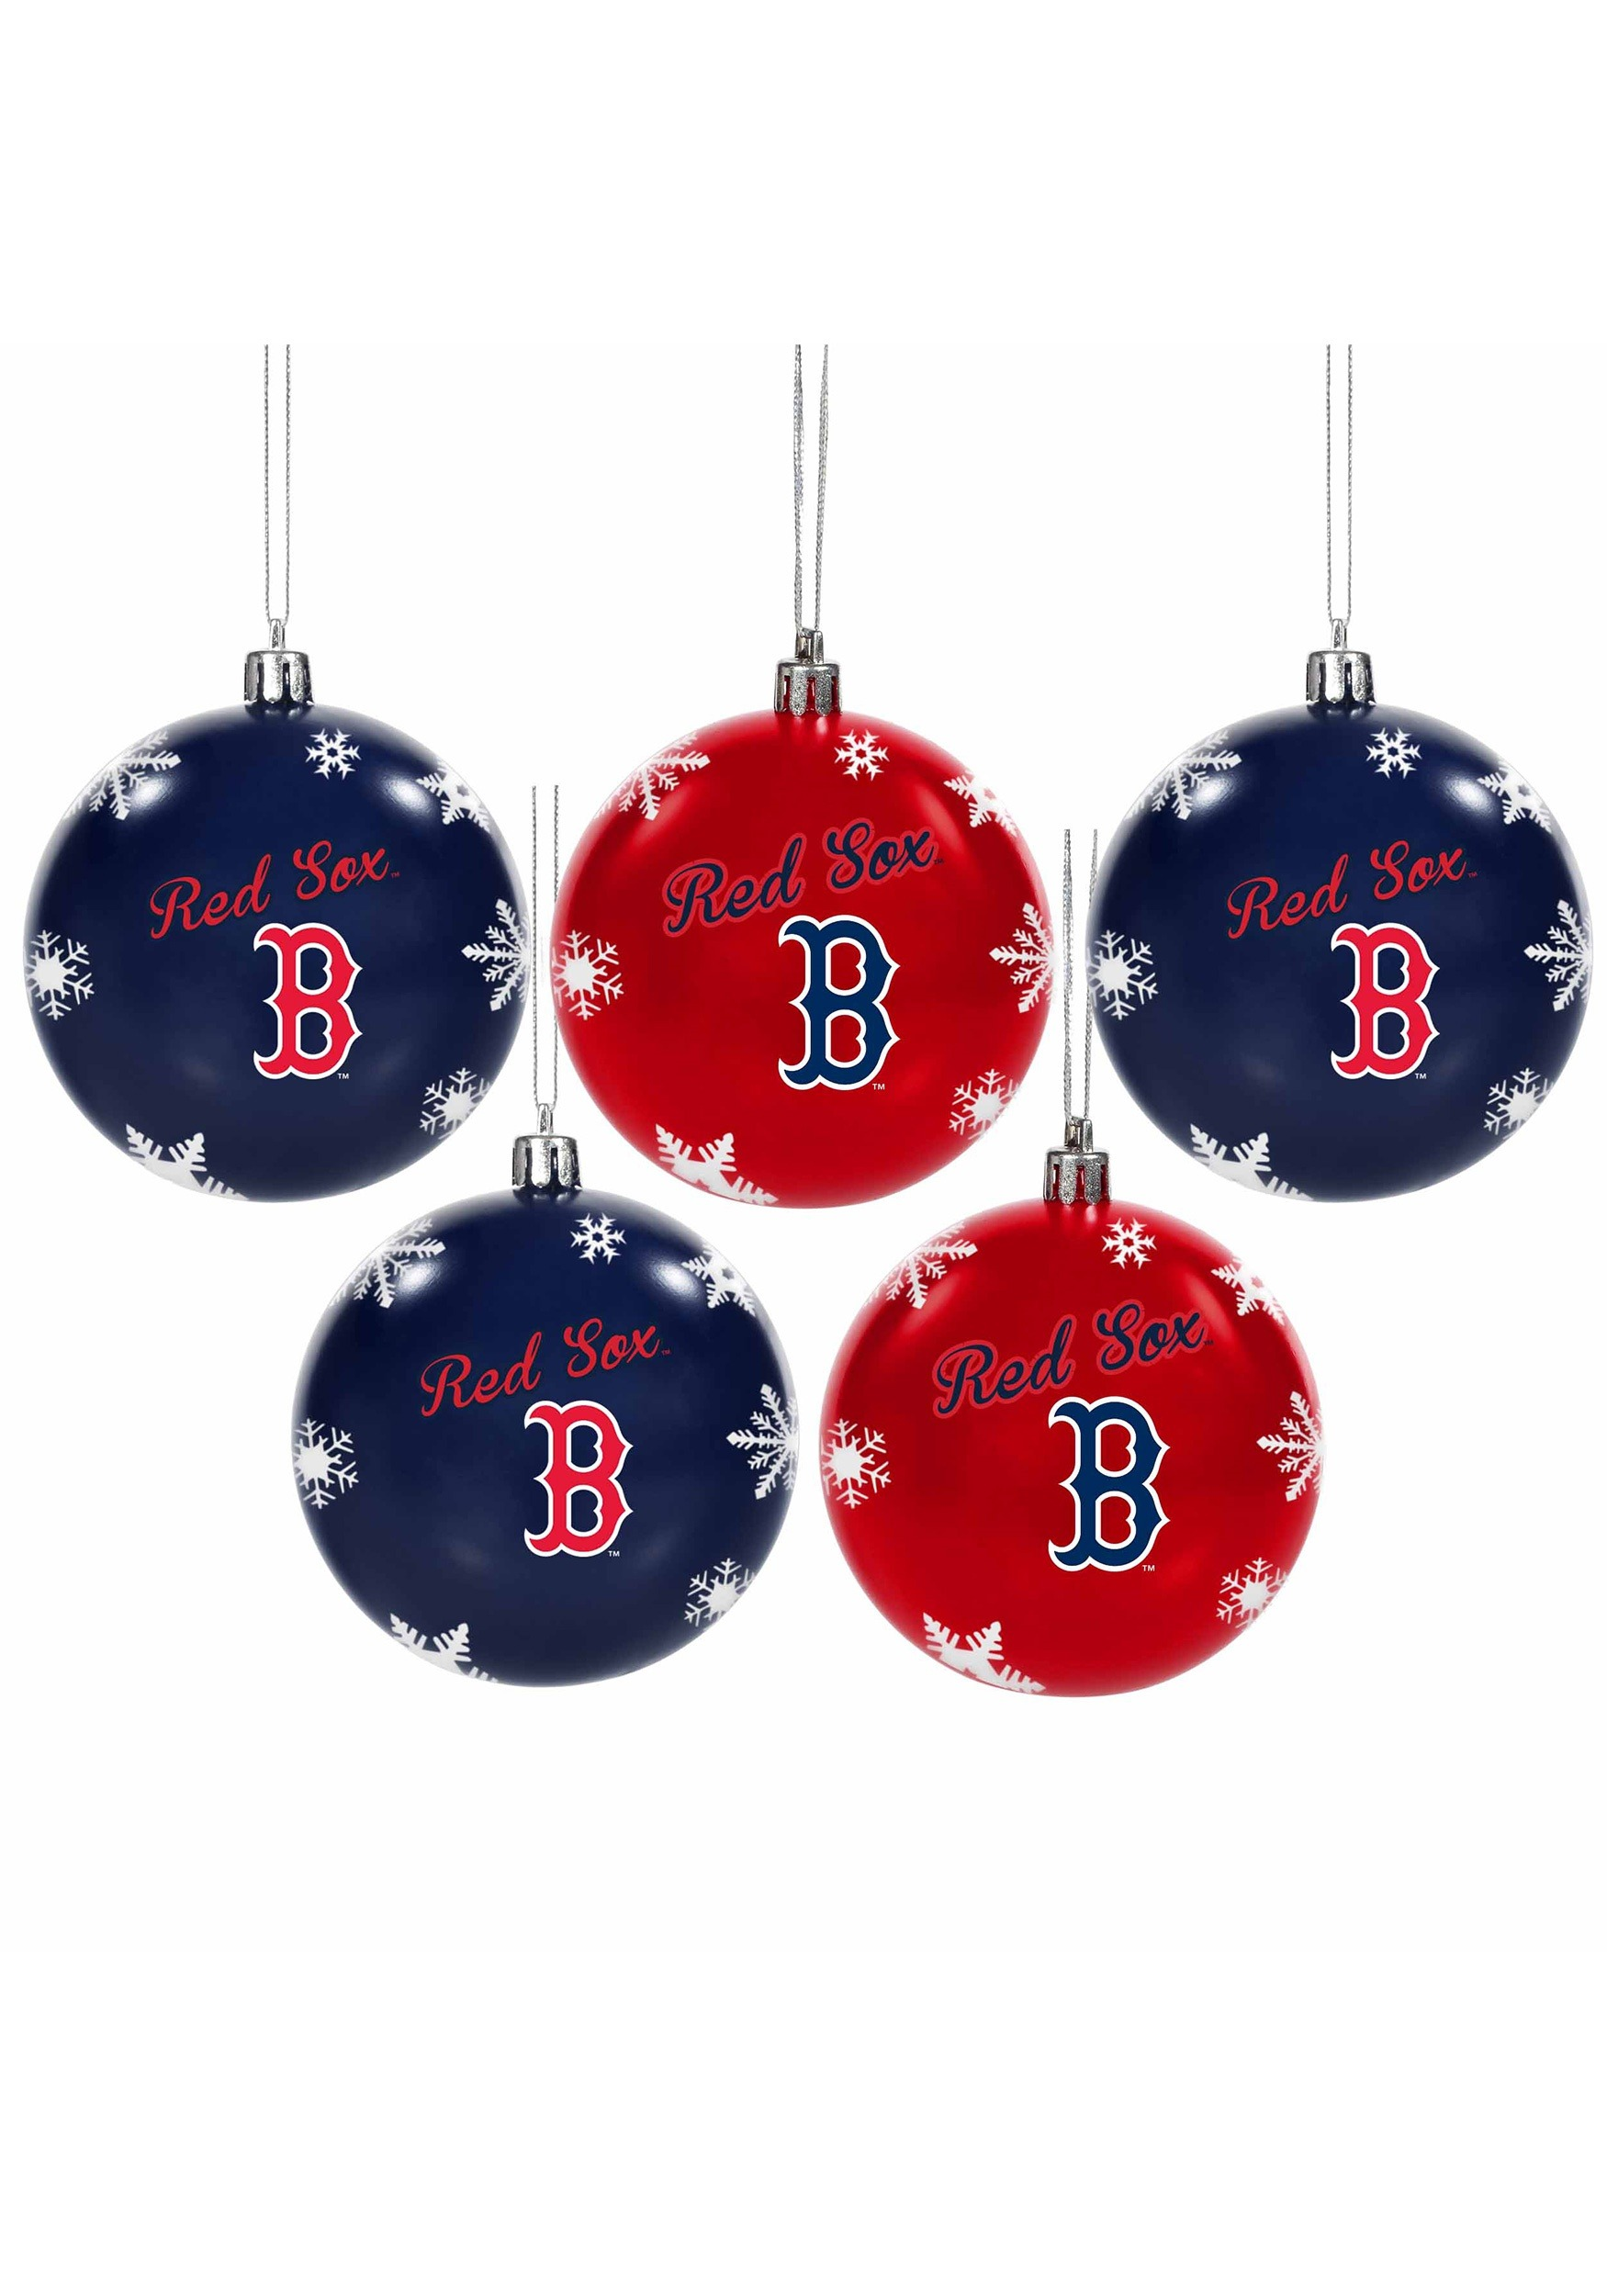 34a8bee06 Boston Red Sox 5 Pack Shatterproof Ball Ornament Set